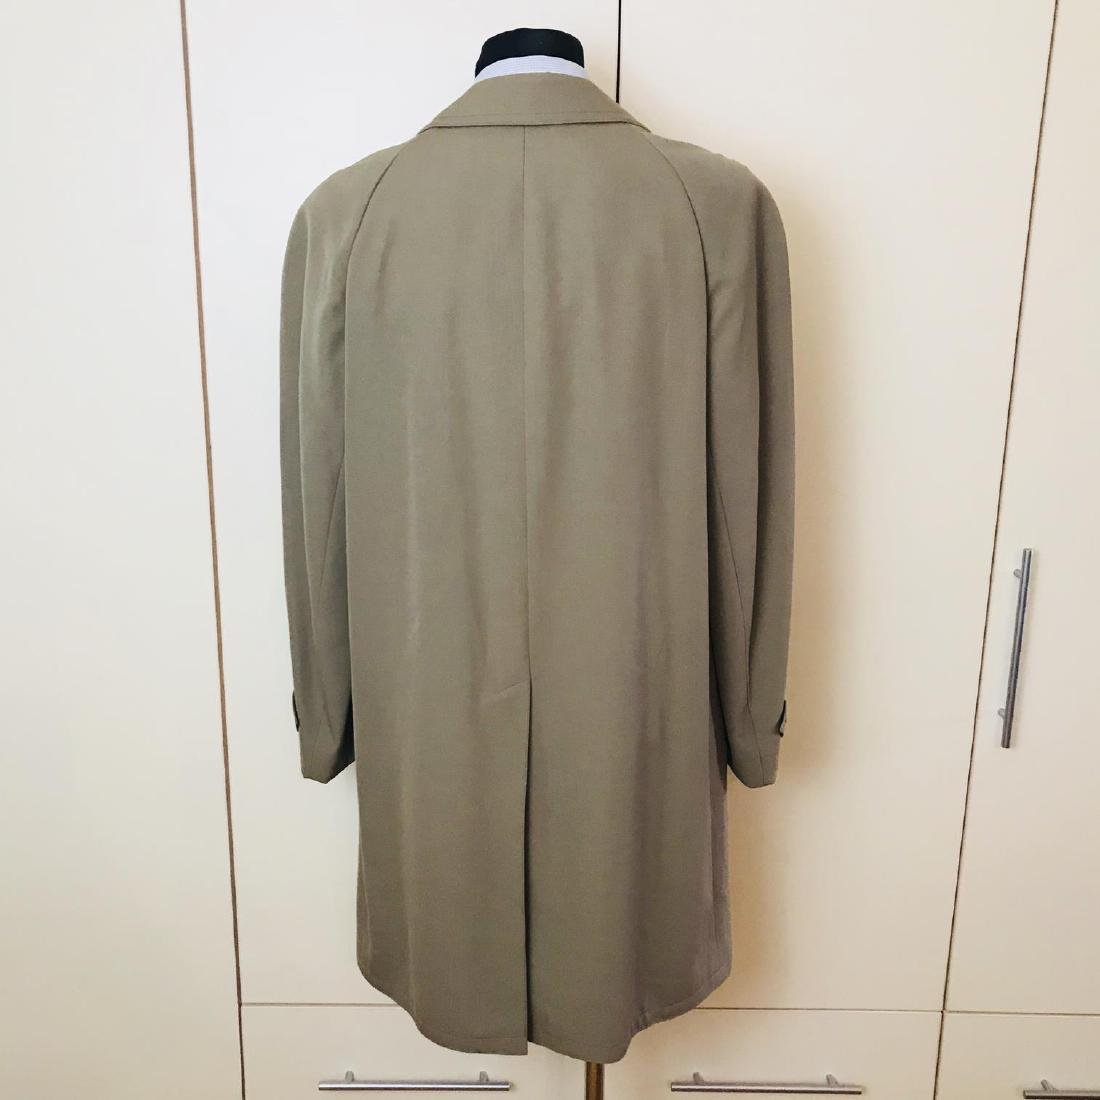 Vintage Men's Trench Coat Size US 38 EUR 48 - 7